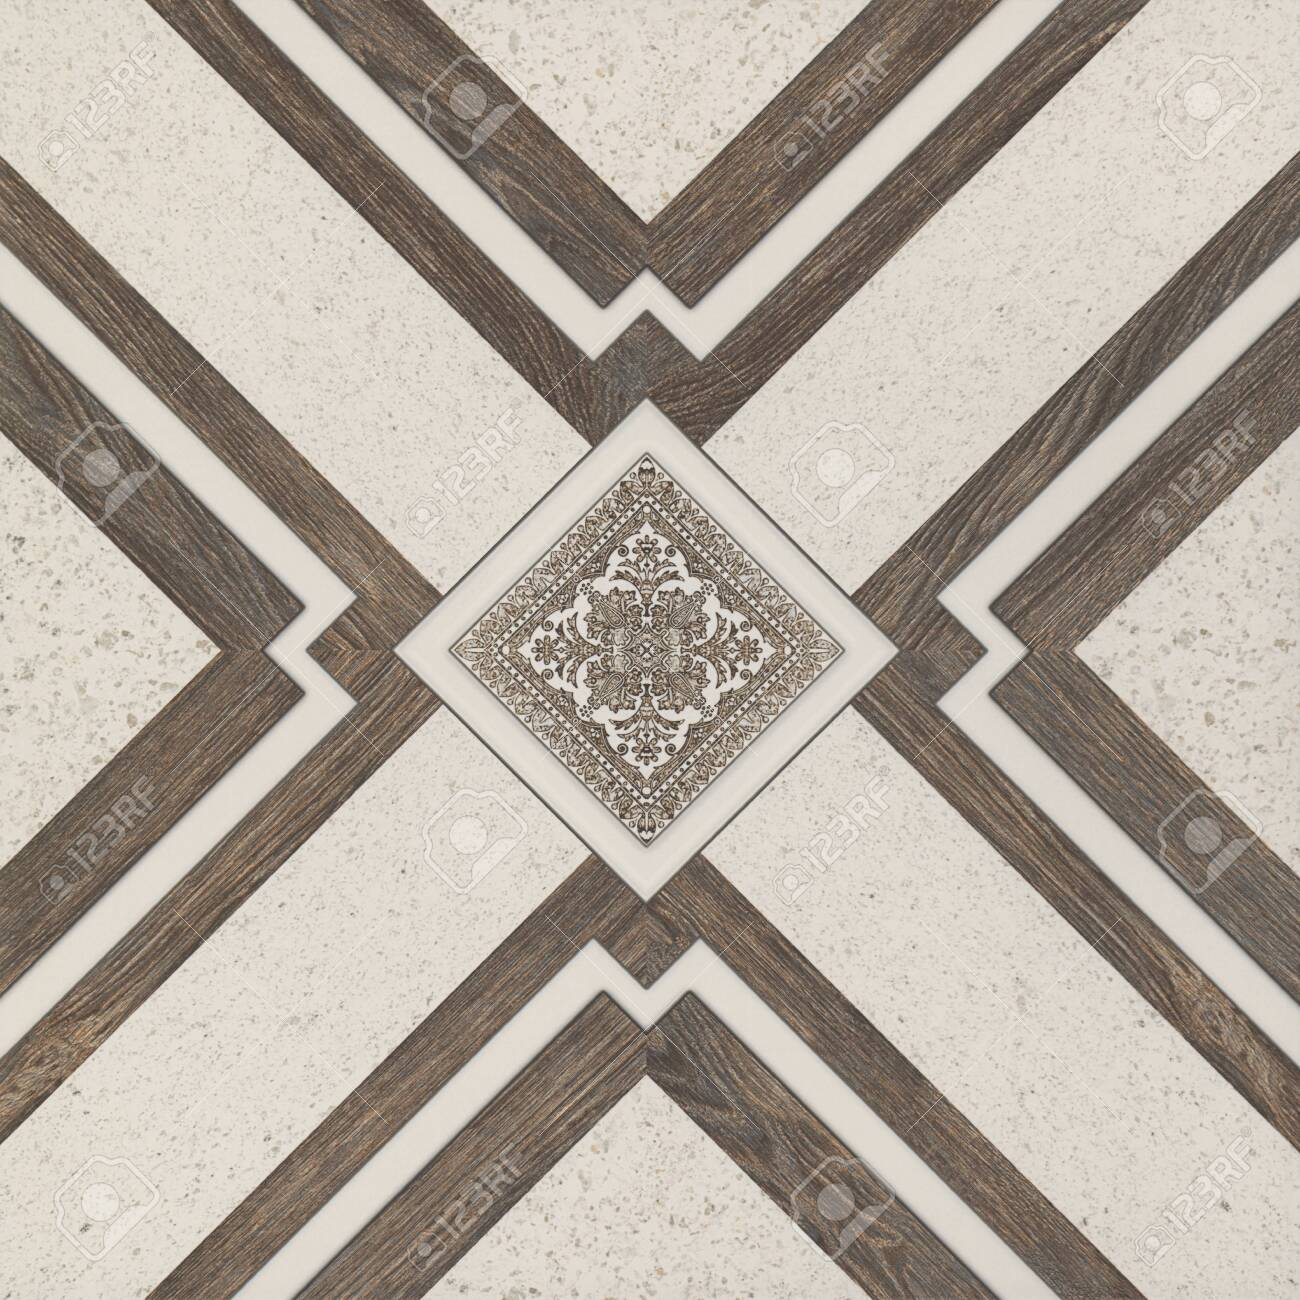 Tiles, Wooden And Marble Geometric Shapes, Wooden Floor And Wall ...